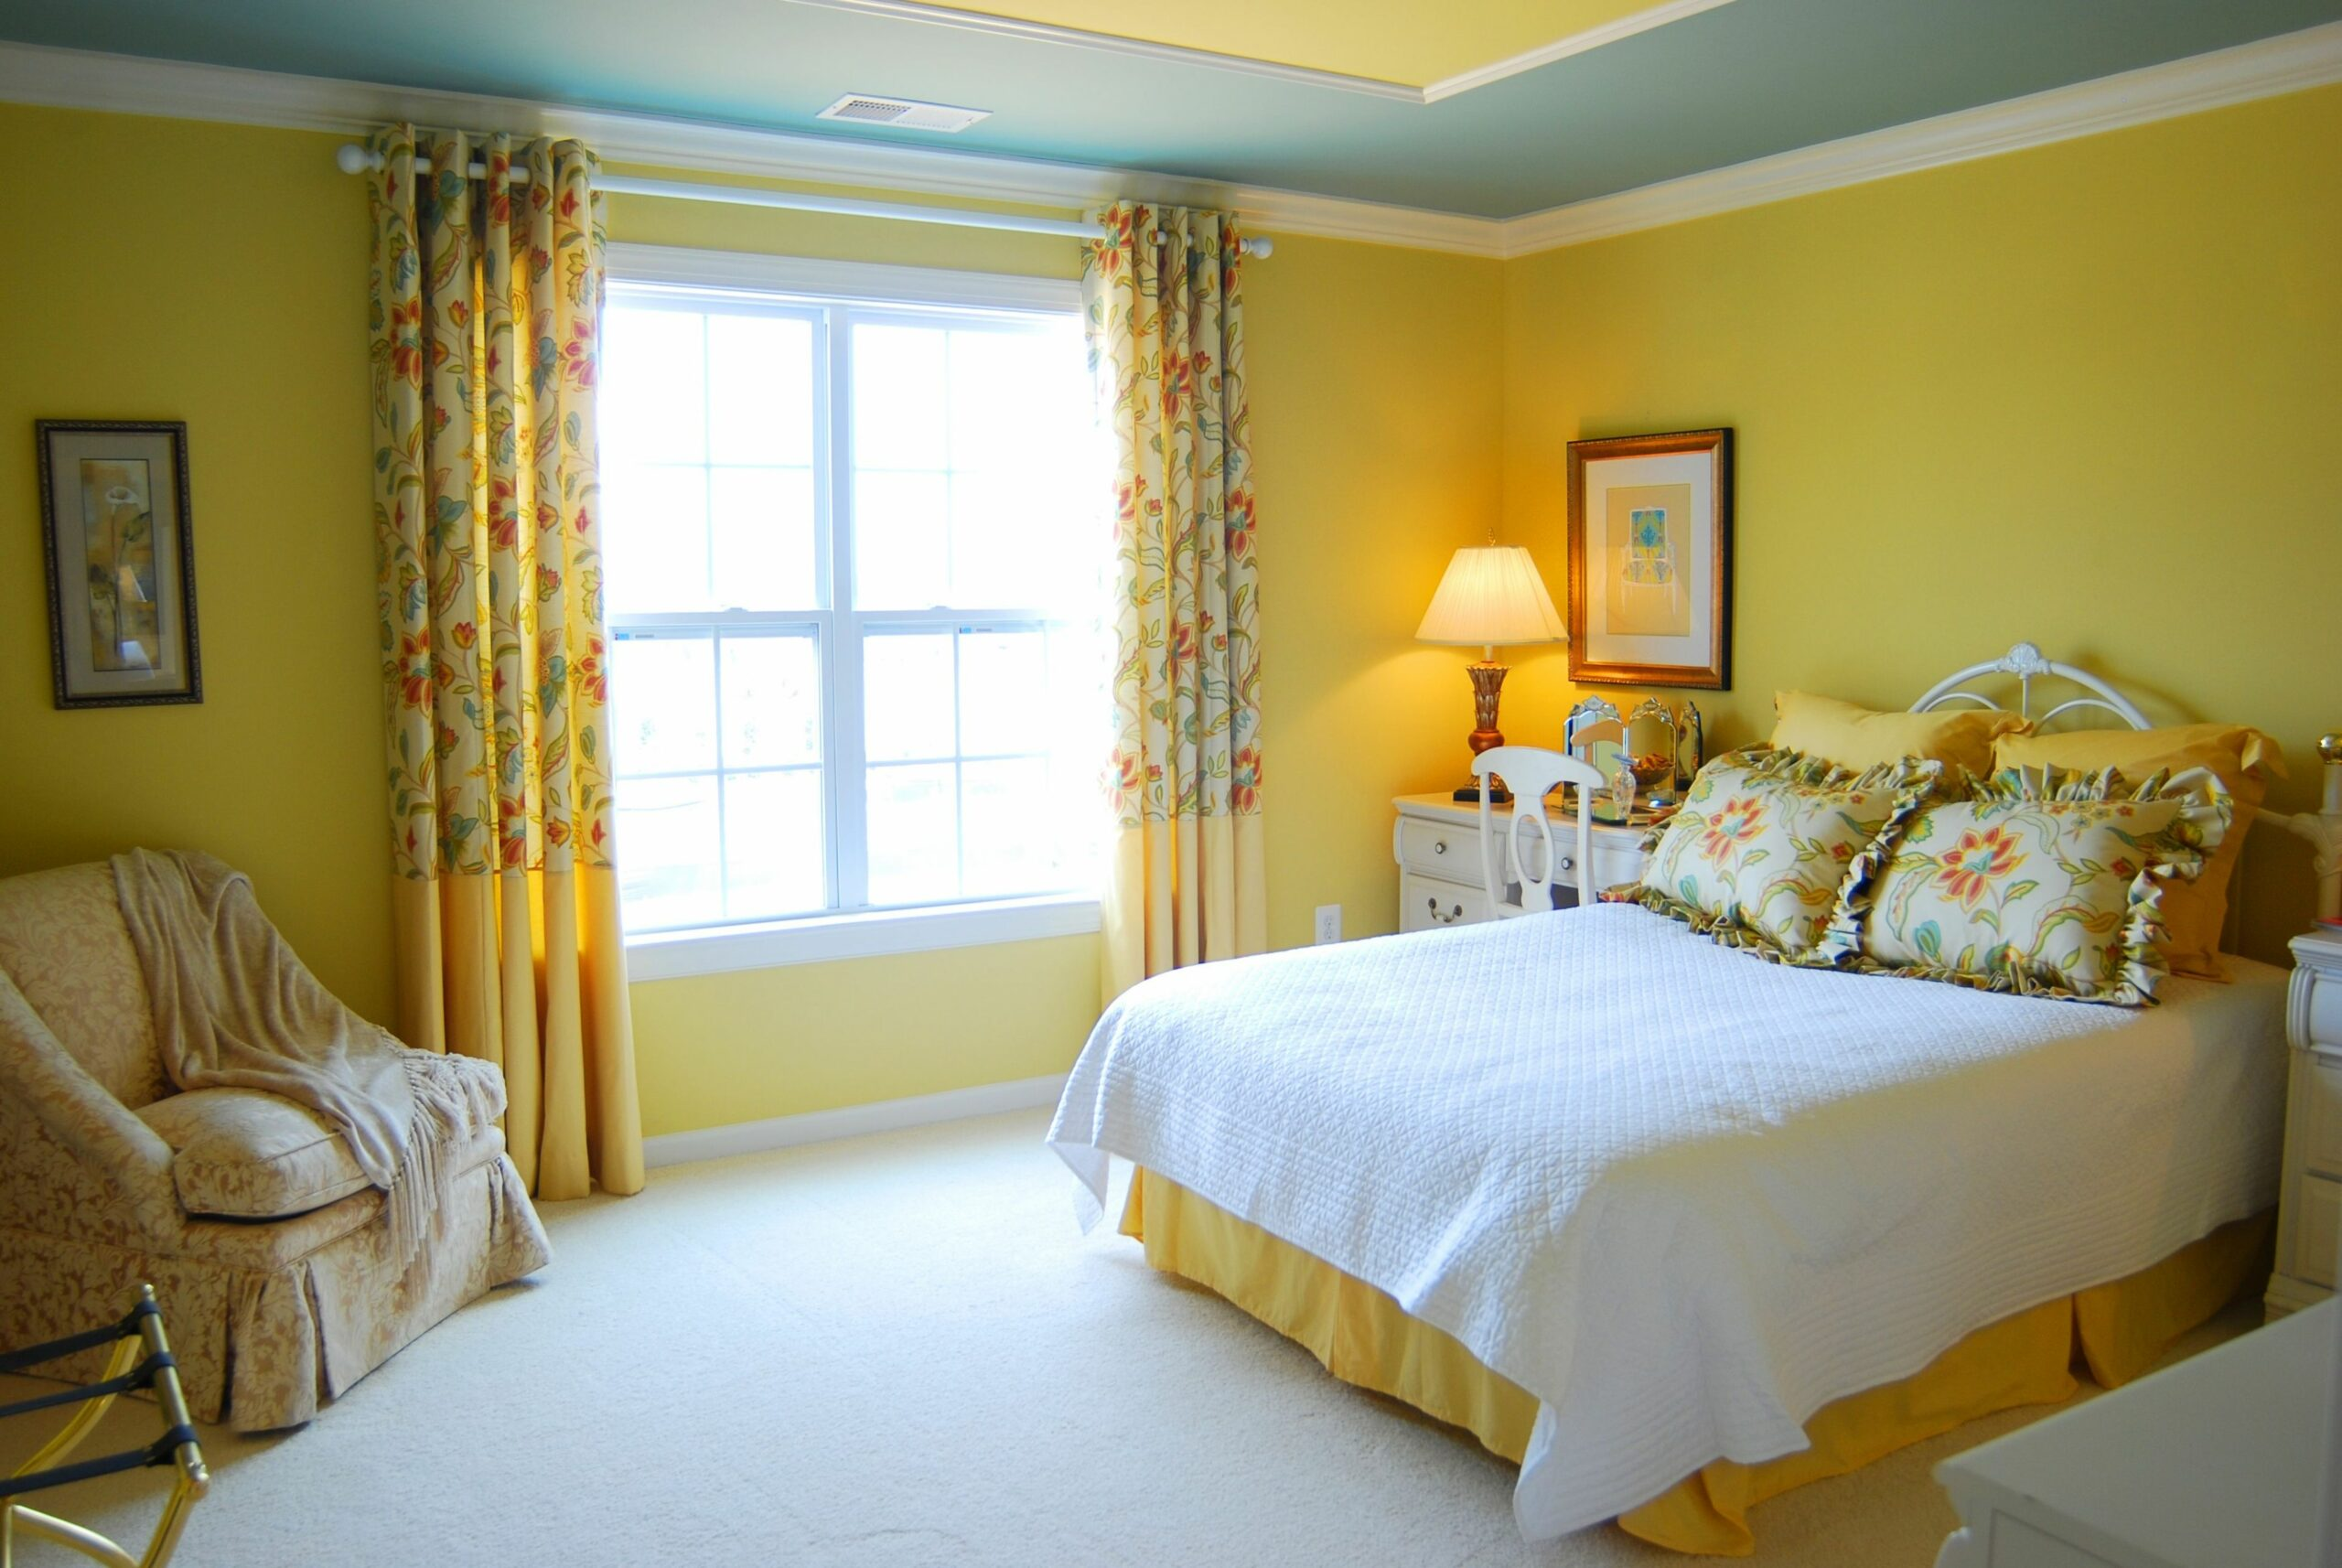 Catchy Yellow Teenage Girls Bedroom Paint Color Idea with Yellow ...